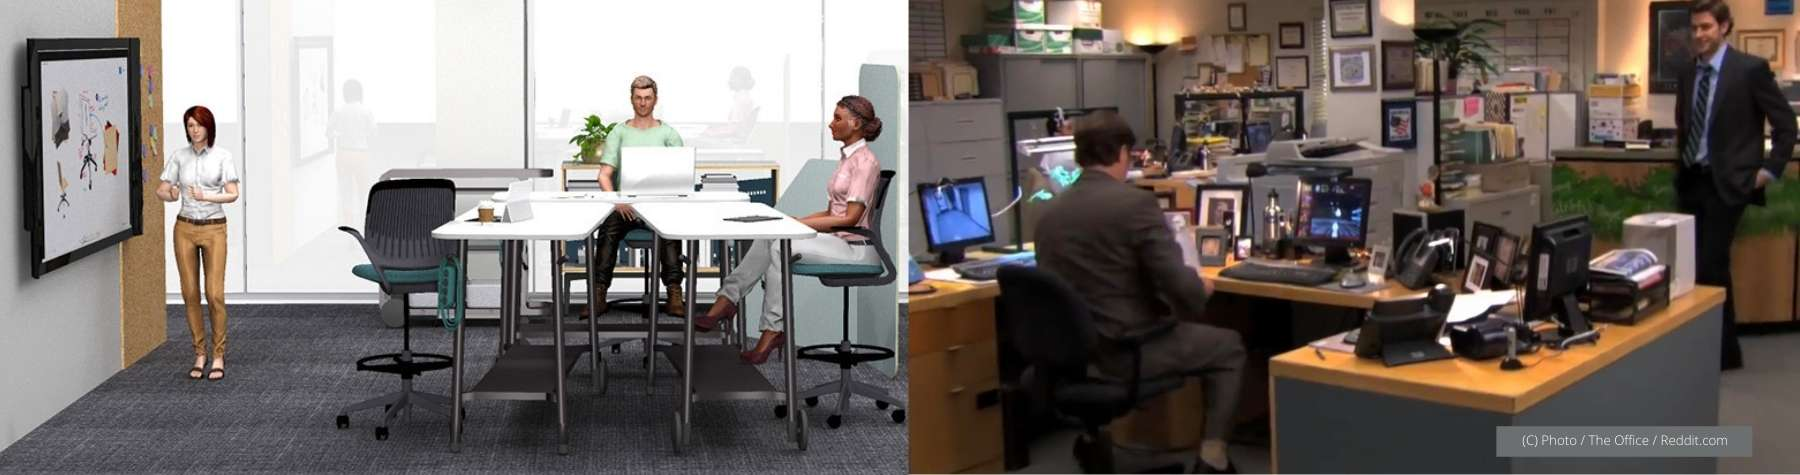 Red Thread's Open Flex Space vs The Office's Megadesk